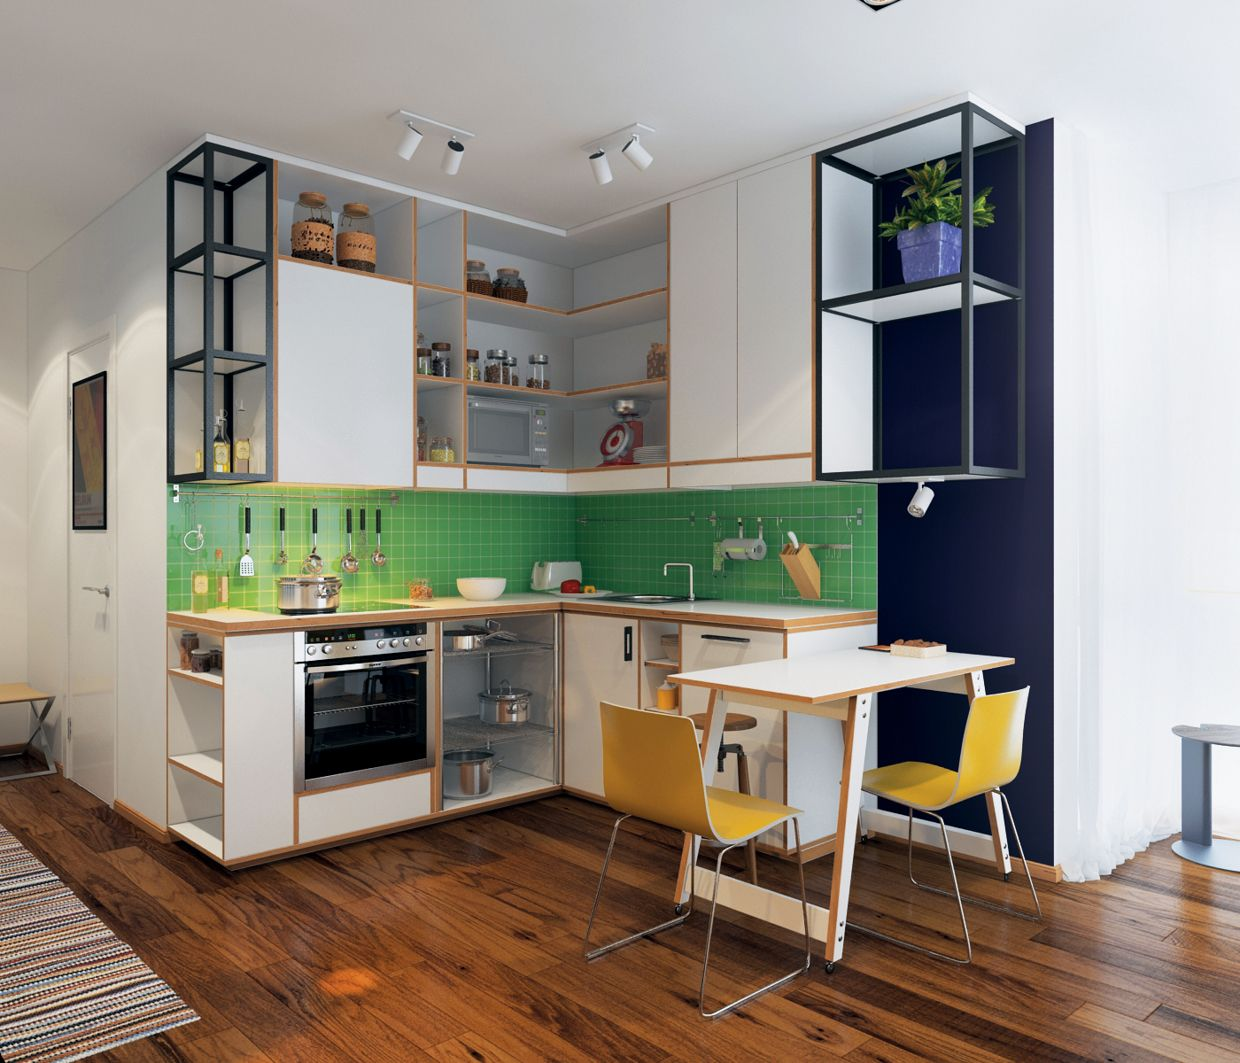 L Shaped Kitchen Ideas For Multipurpose Spaces: Inspiráció és ötletek